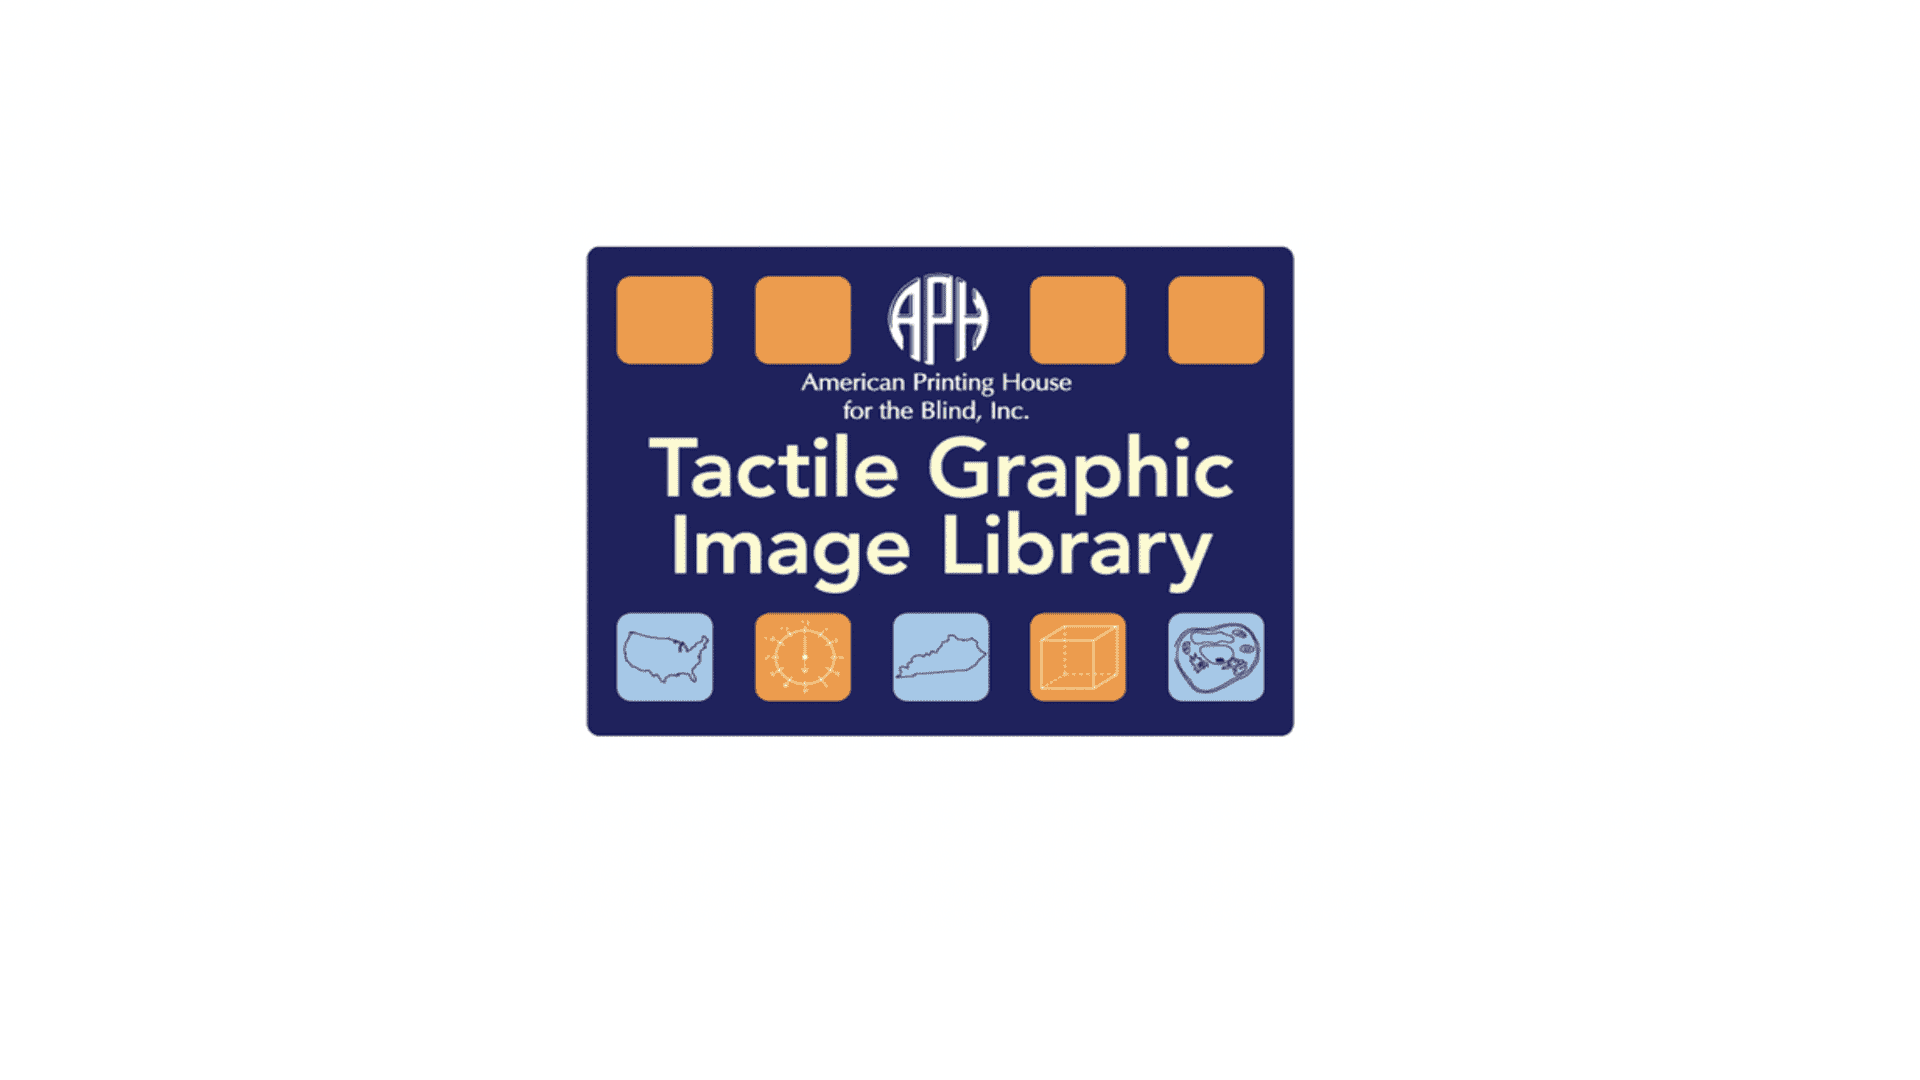 Tactile Graphic Image Library logo